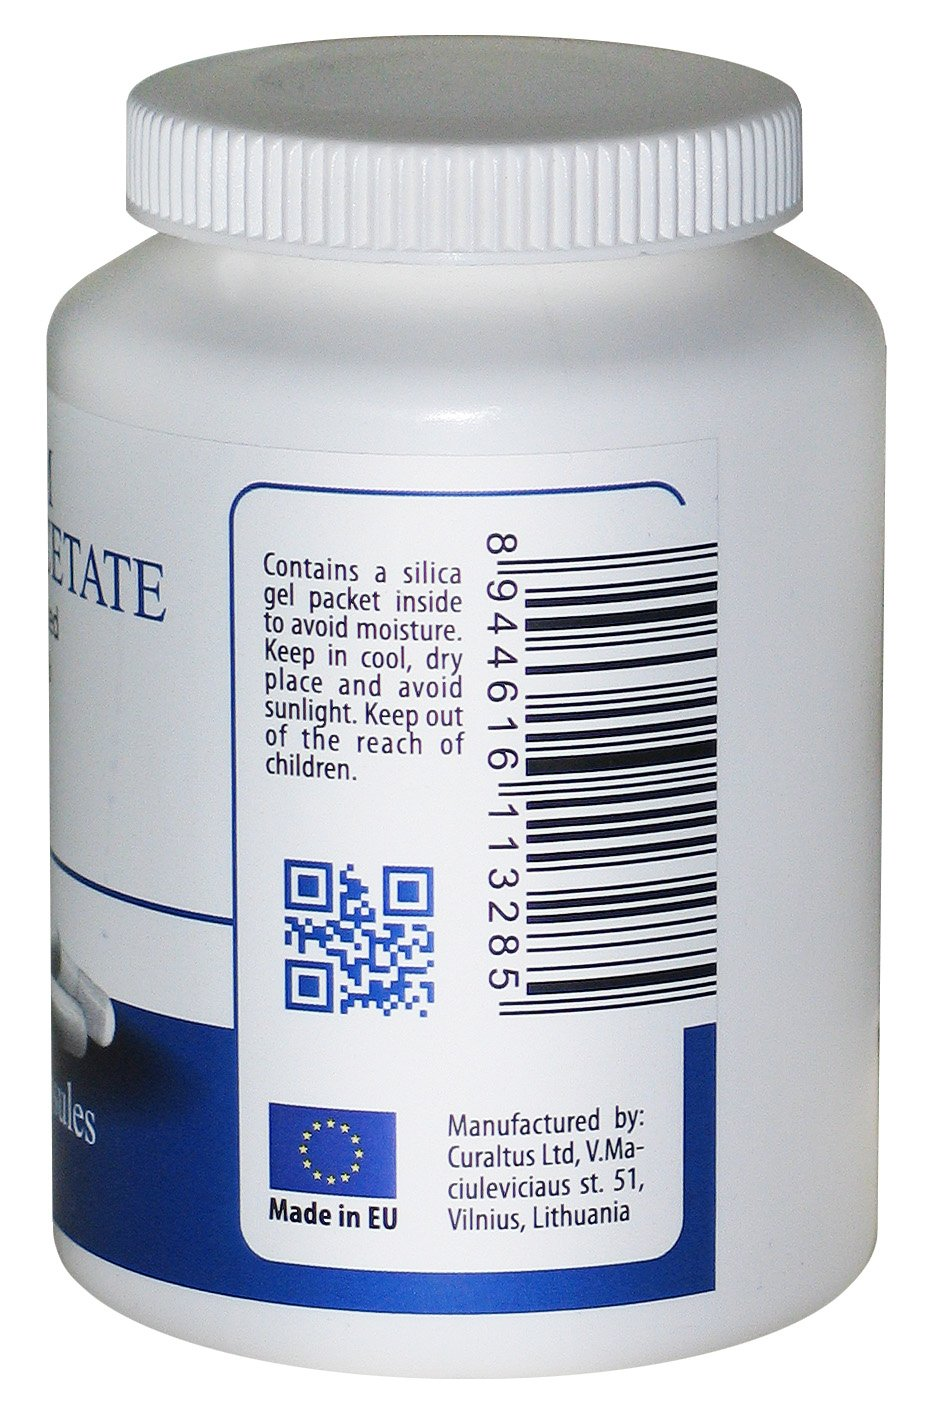 DCA - Sodium Dichloroacetate 500mg - Best Purity >99.9%, Made in Europe, By DCA-LAB, Certificate of Analysis included, Tested in a Certified Laboratory, Buy Directly from Manufacturer, 120 Capsules